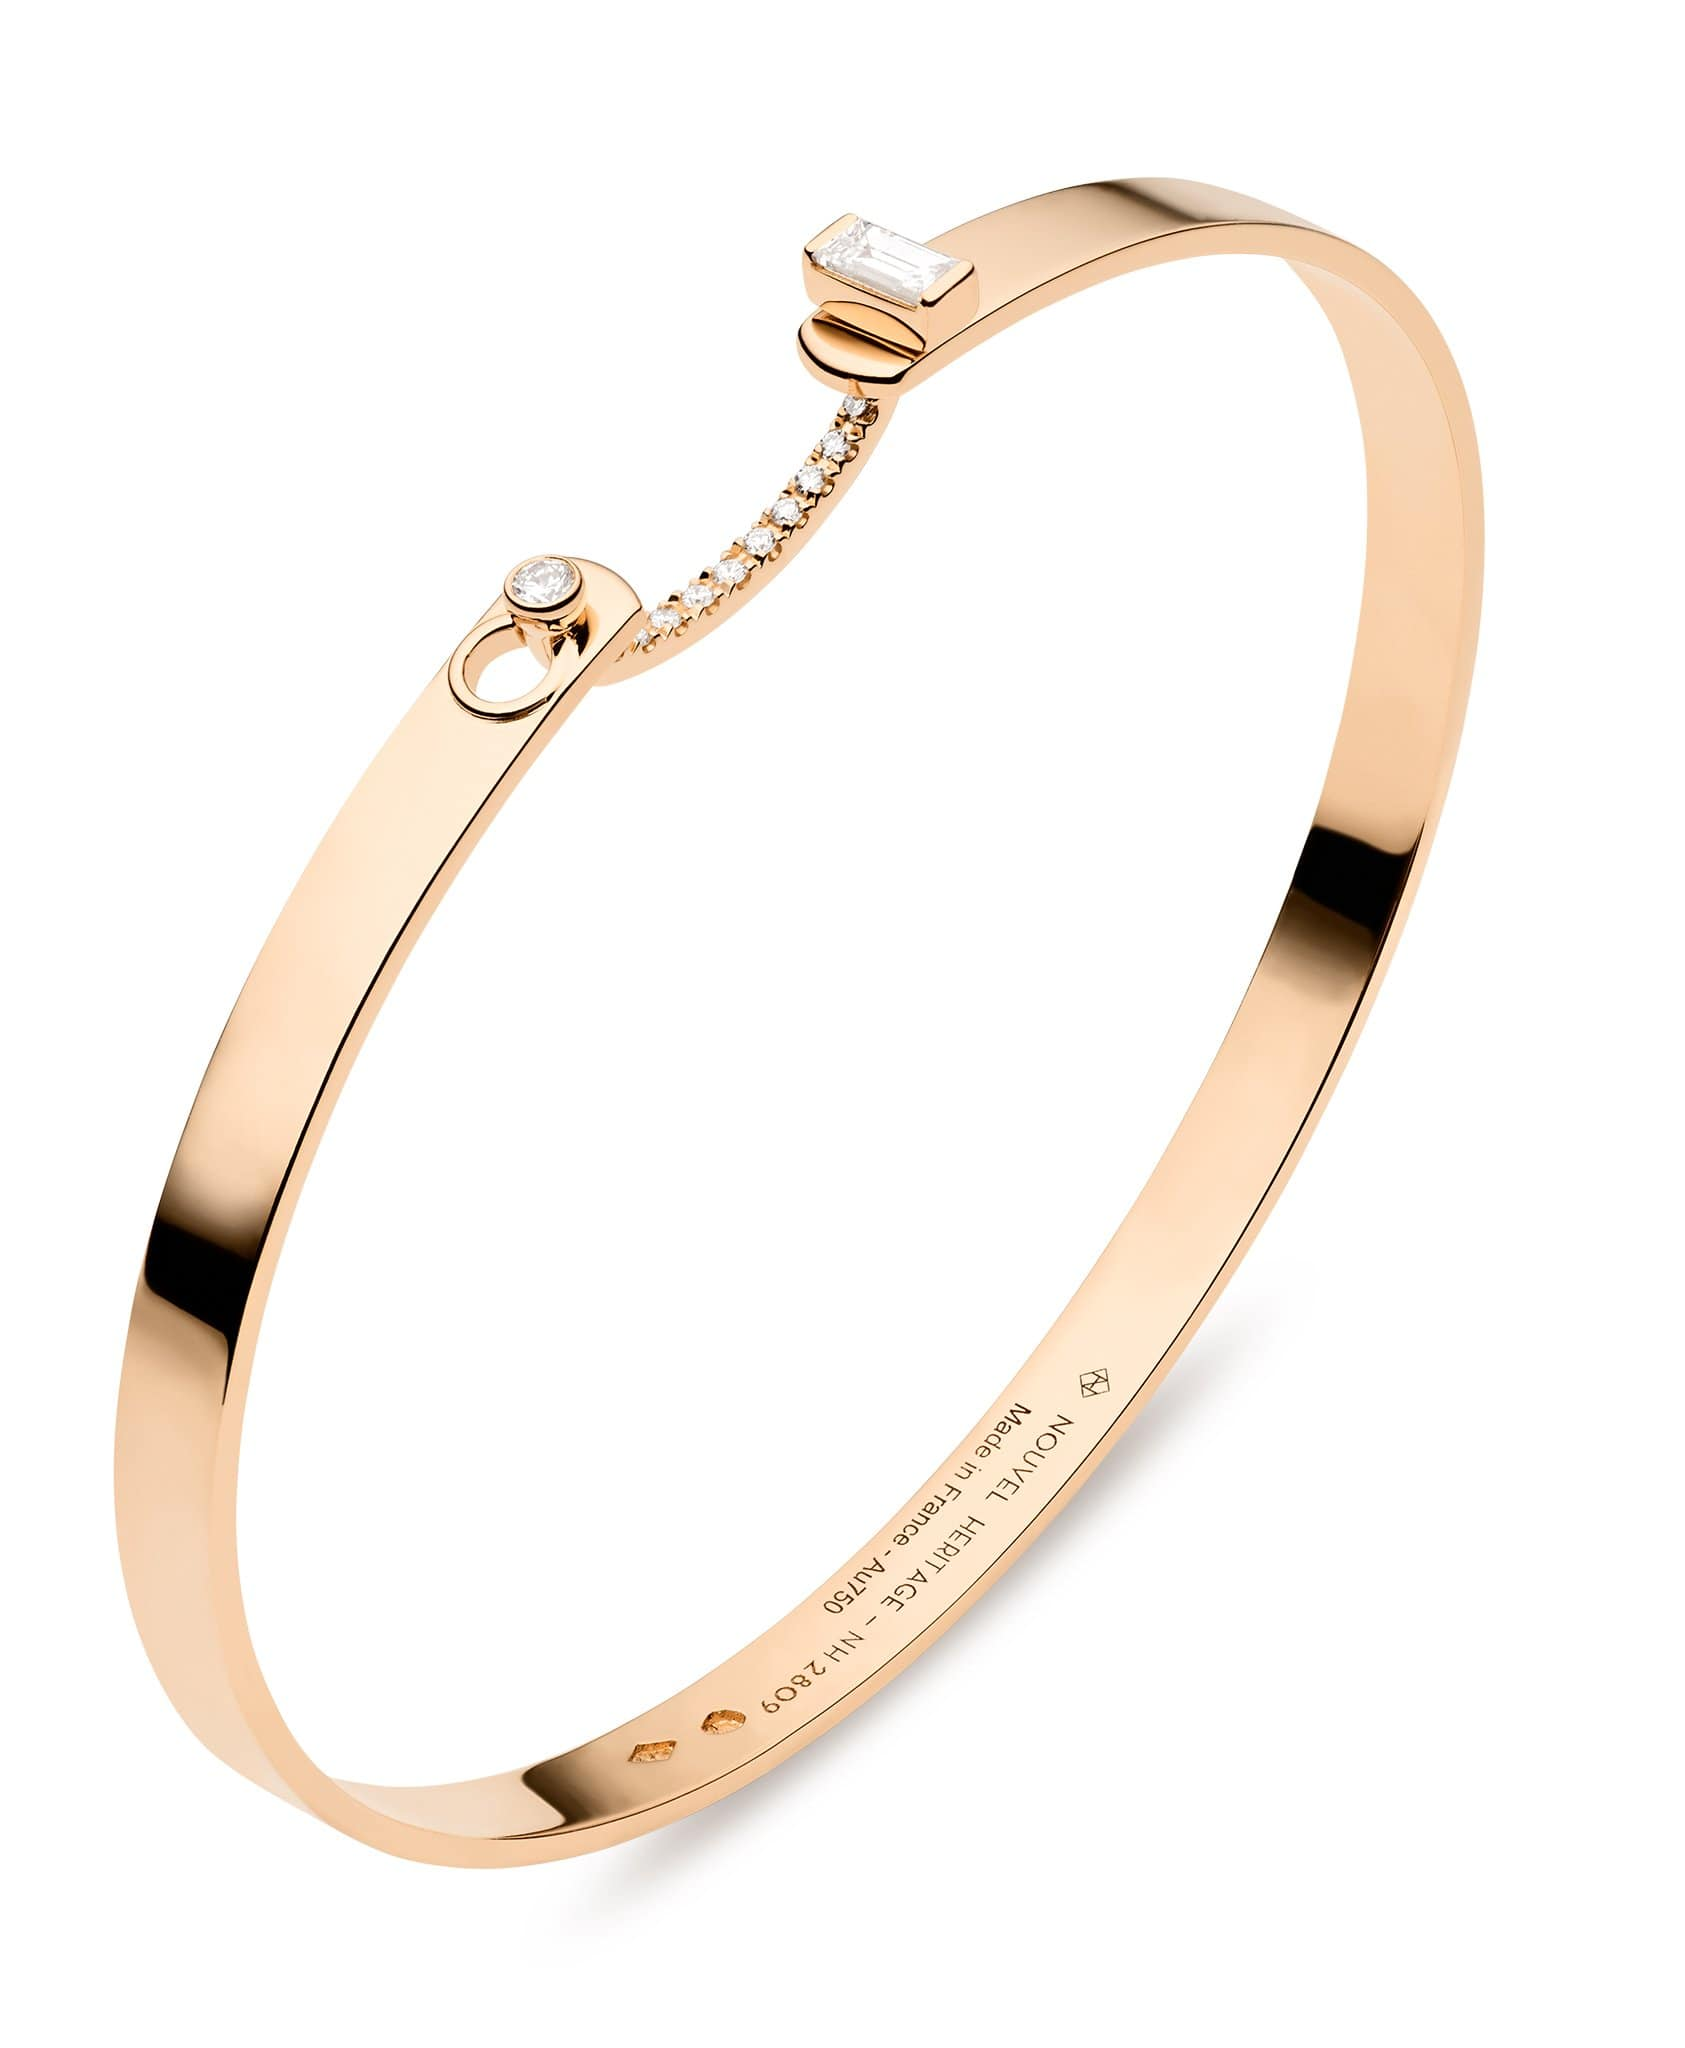 Dinner Date Mood Bangle: Discover Luxury Fine Jewelry | Nouvel Heritage